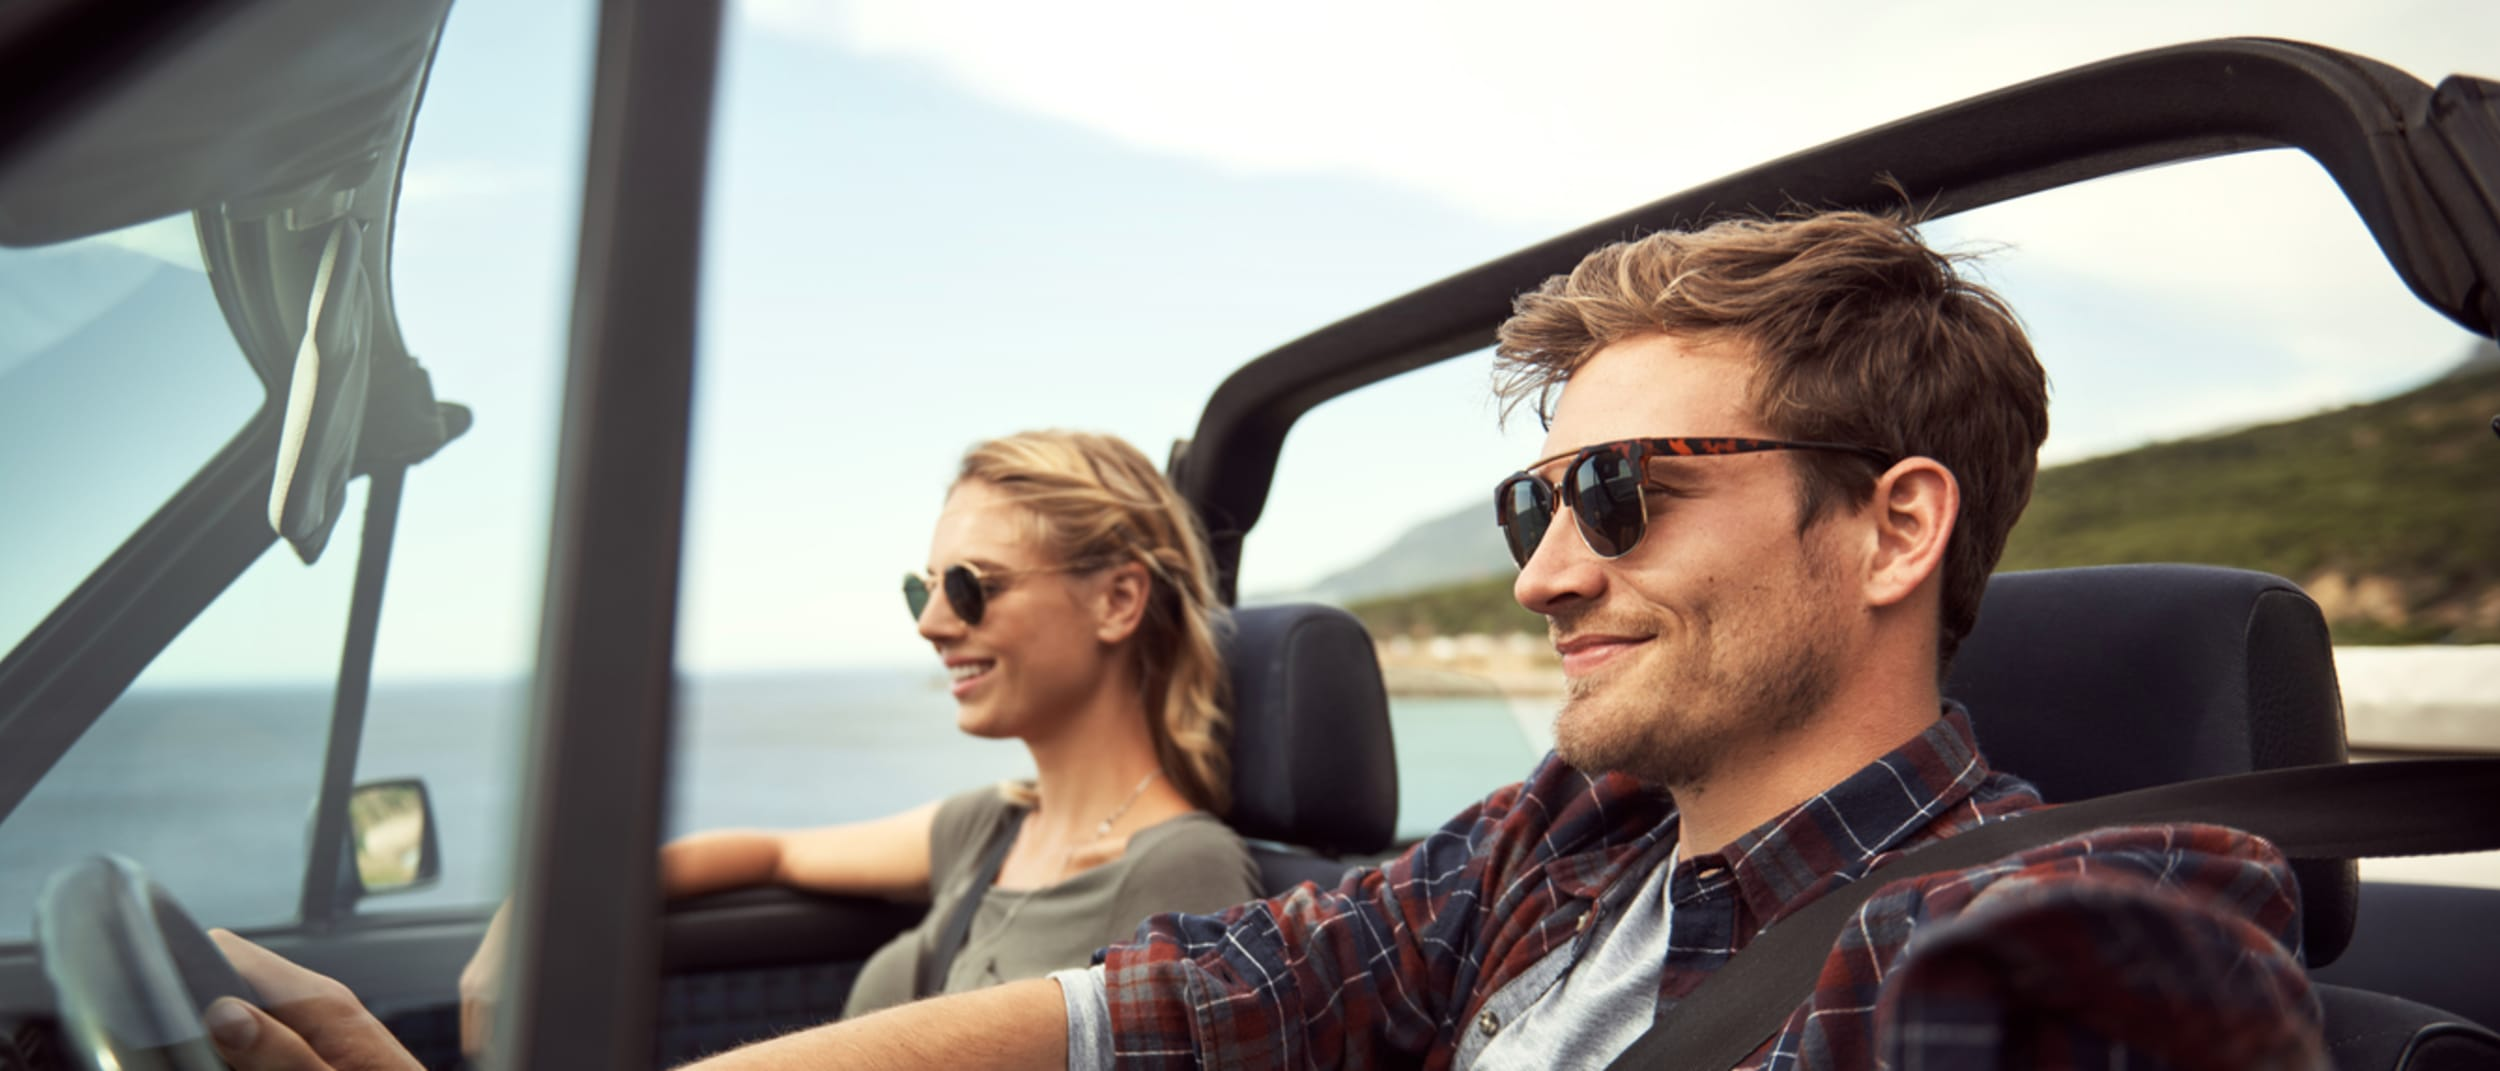 Man and woman driving wearing sunglasses